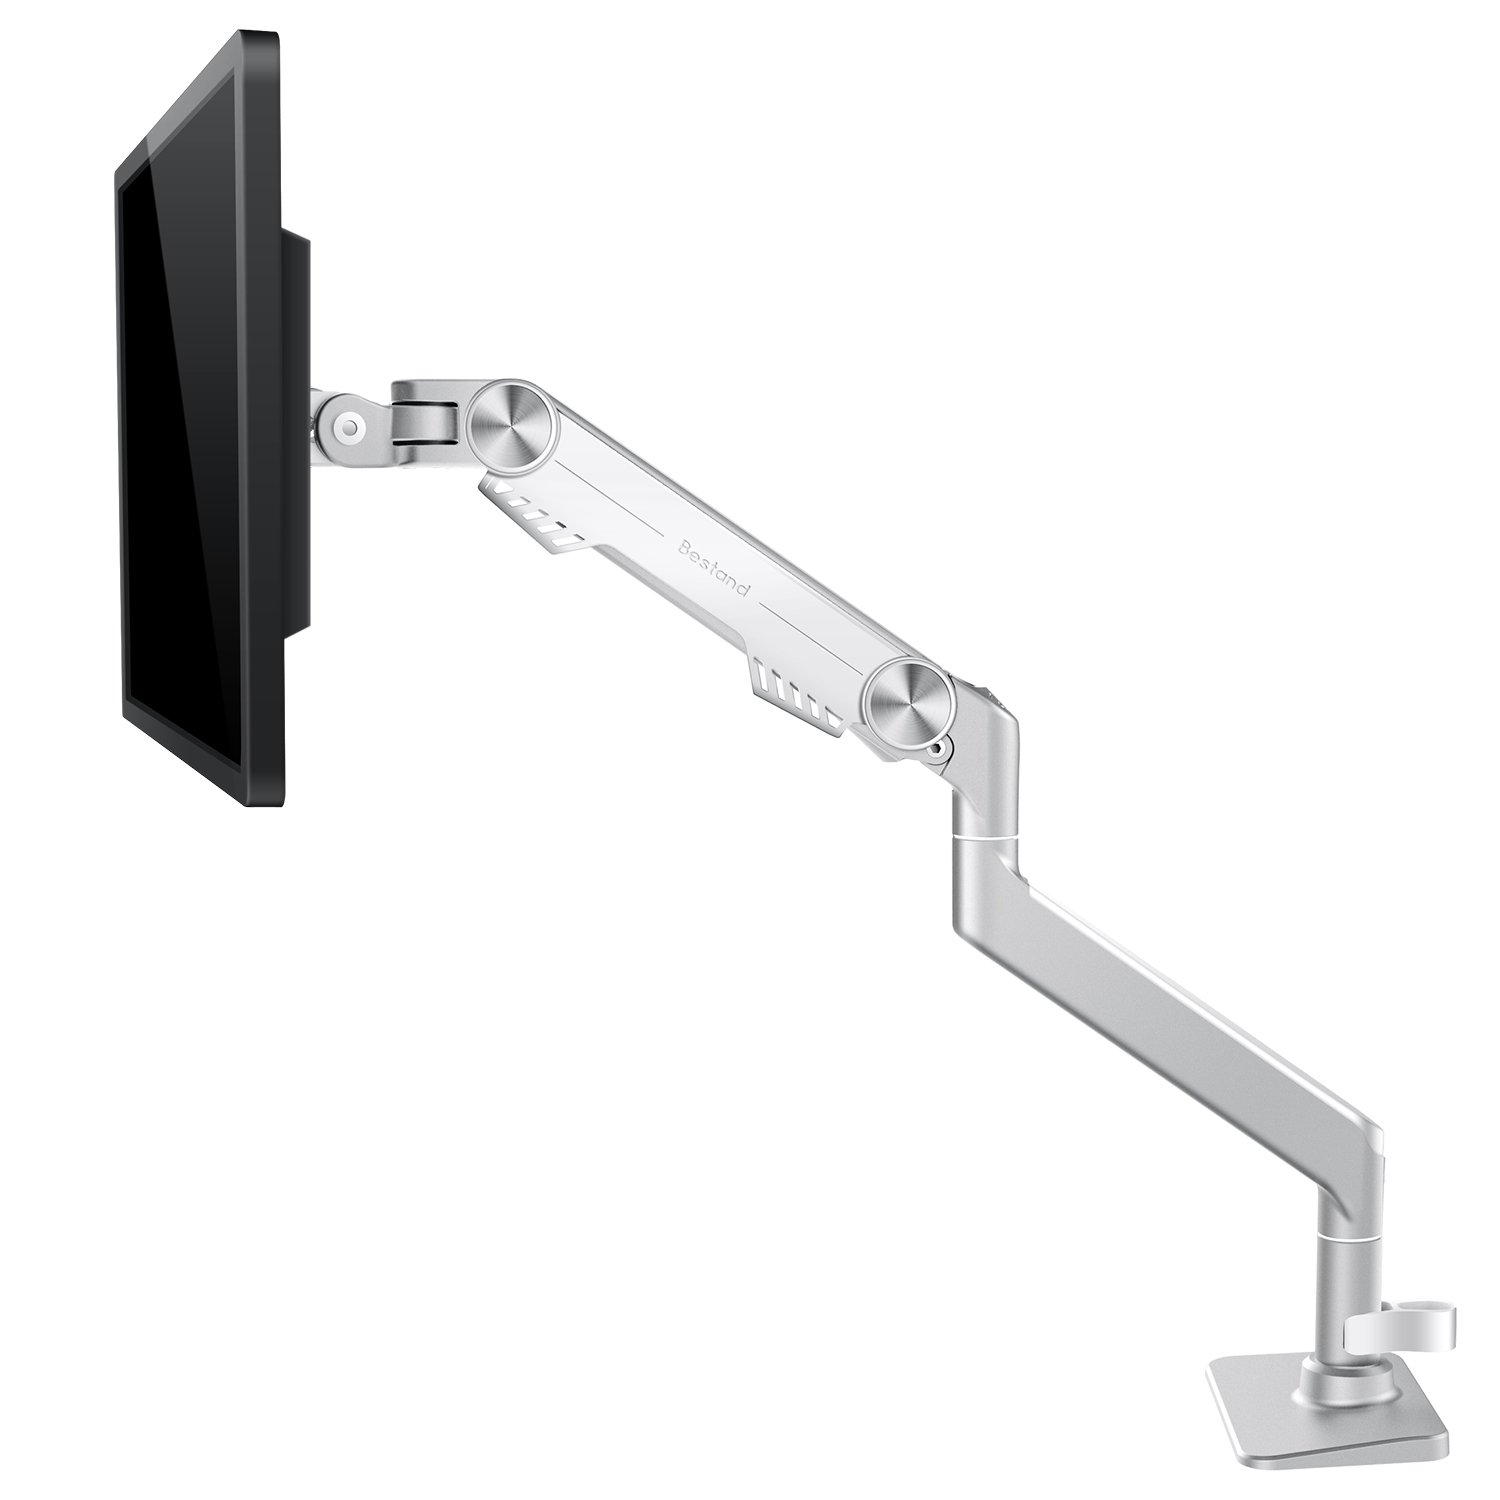 Monitor Arm Mount, Bestand Vesa Single Display Desk Mount Stand for LCD LED Computer TV Screen up to 27'', (Single Arm, Silver)